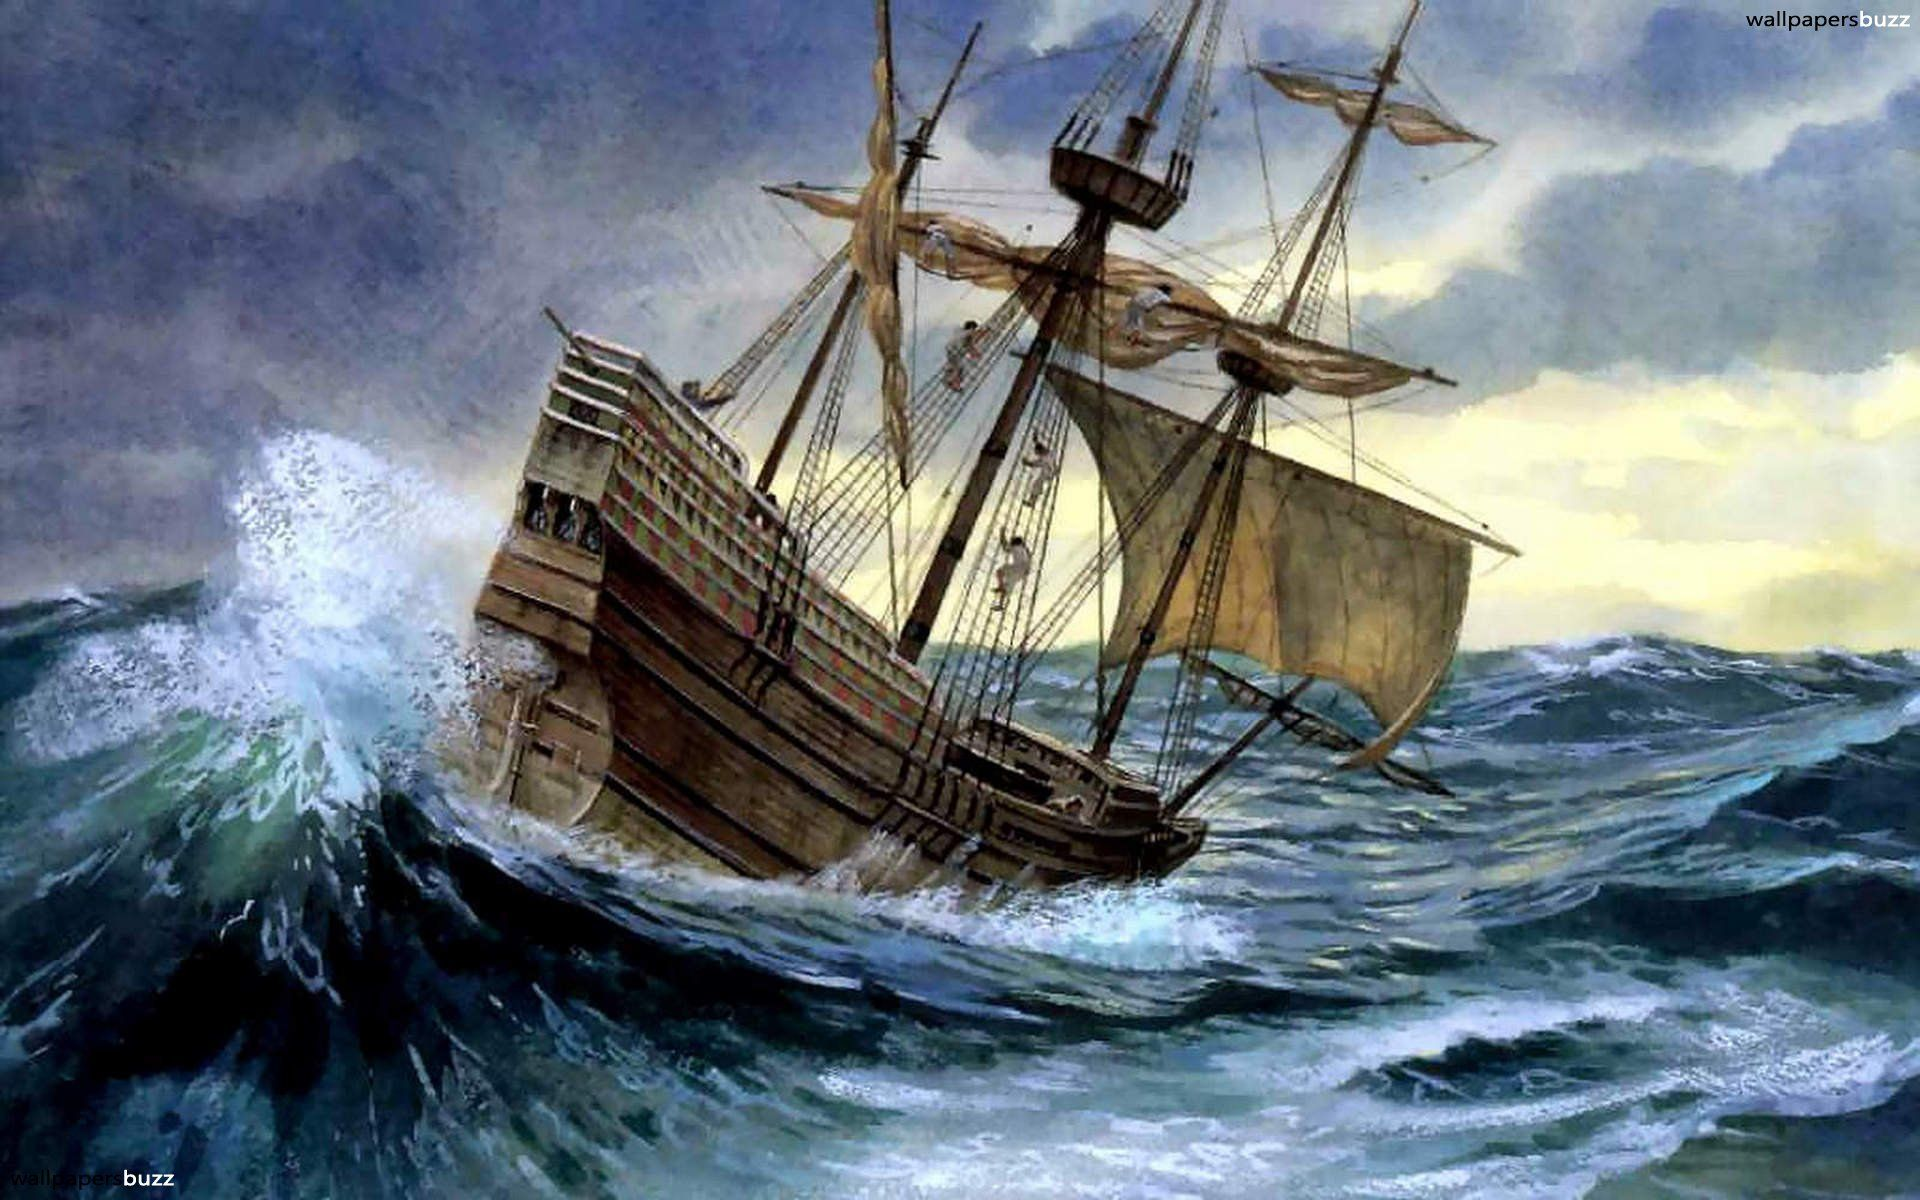 Worksheet Ship In A Storm shipwreck pictures comments for a ship in storm hd wallpaper lydia the tattooed lady pinterest boats sailing ships and t